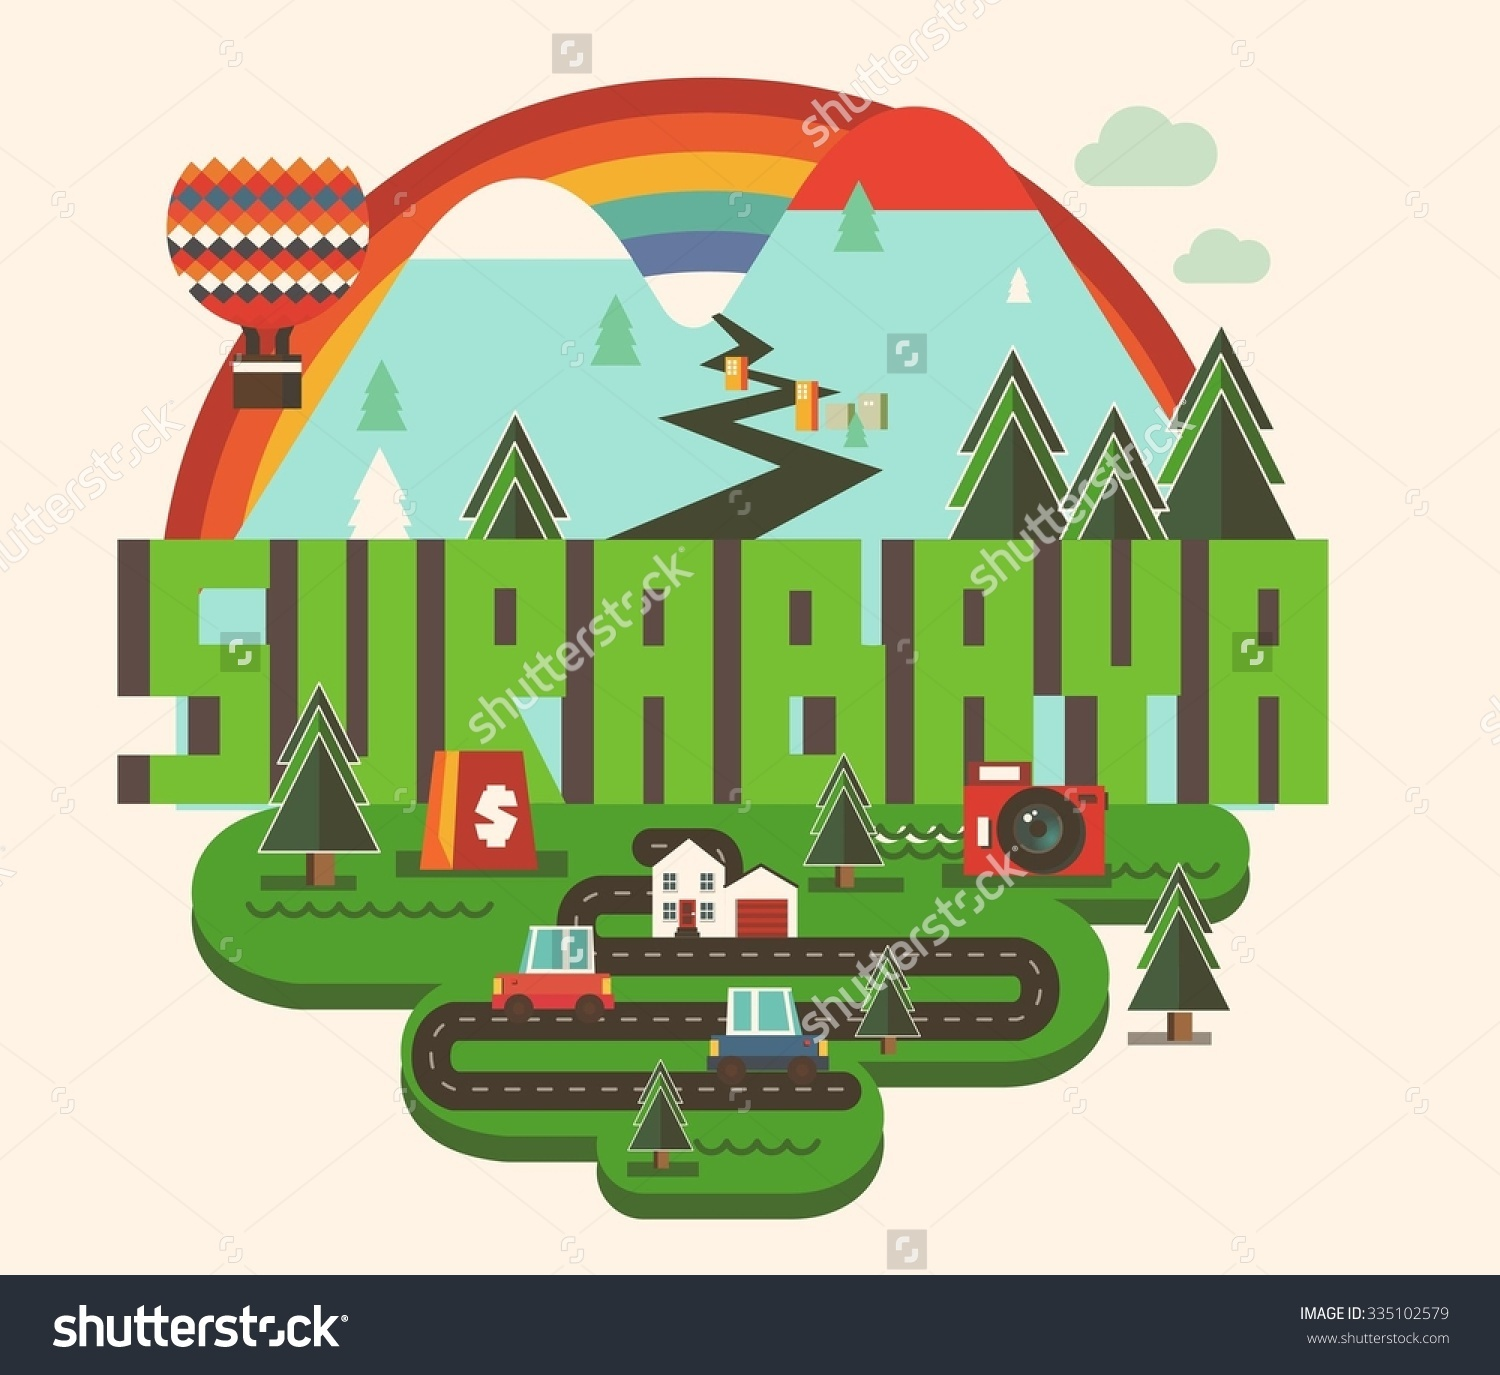 Surabaya Beautiful City World Vector Illustration Stock Vector.